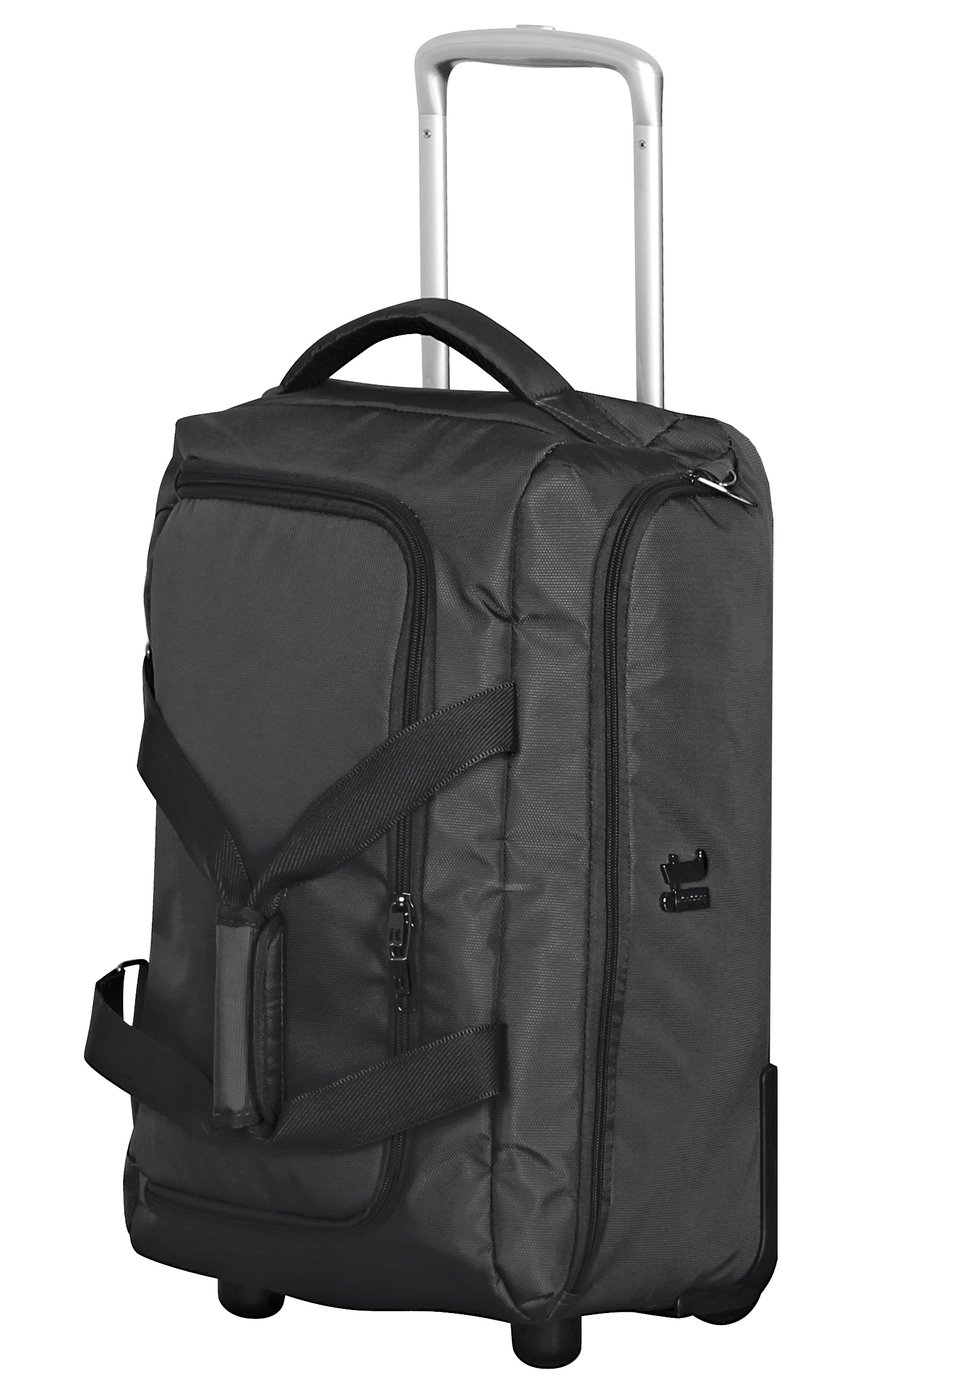 IT Luggage Megalite Small Lightweight 2 Wheels Holdall lowest price